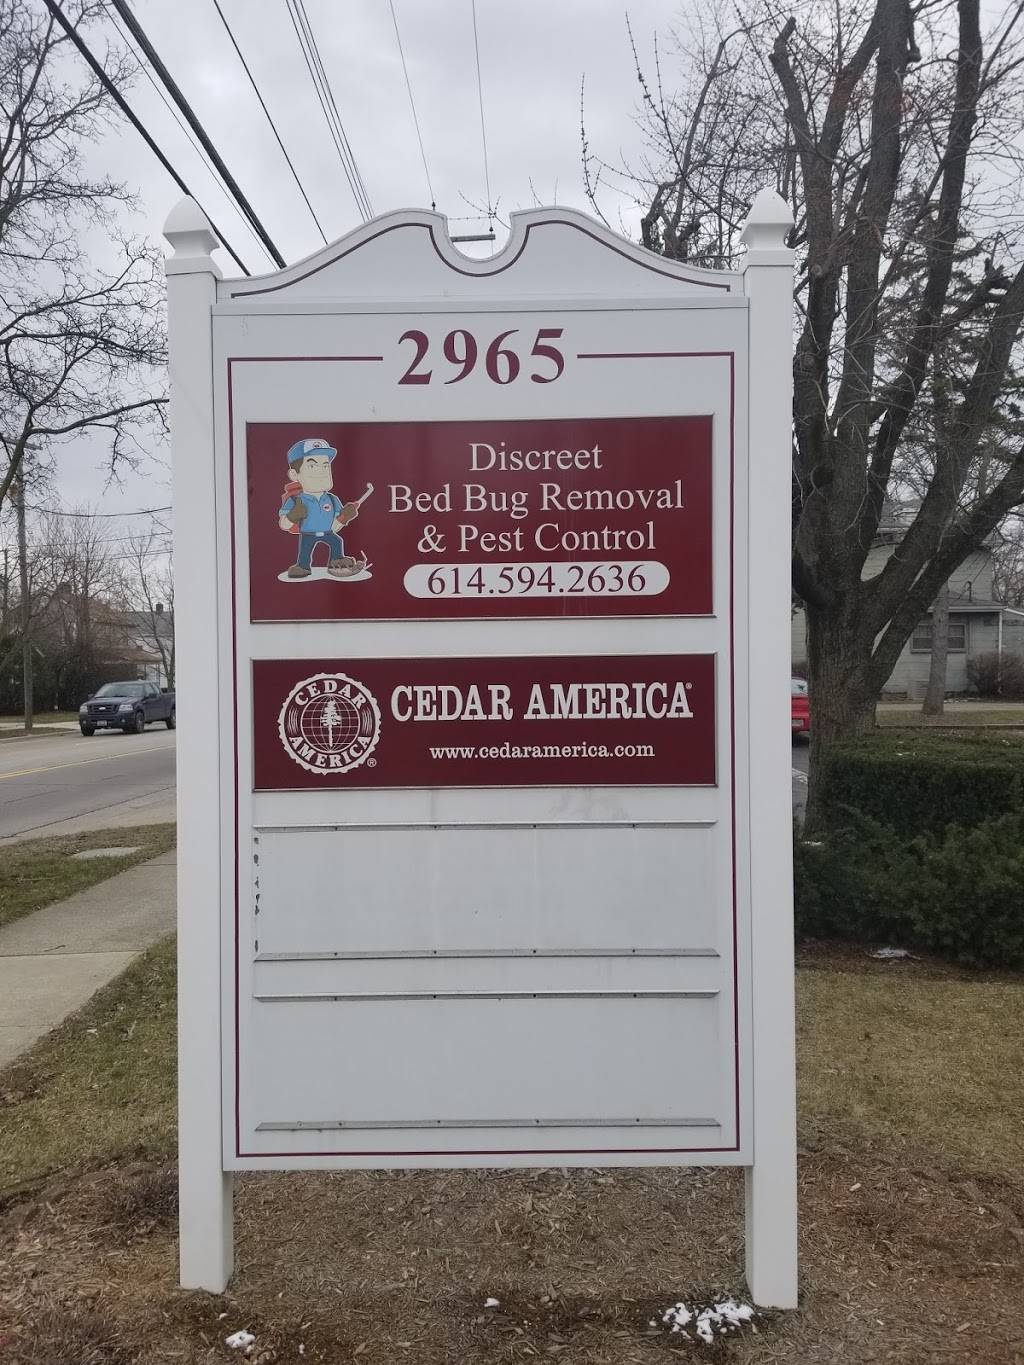 Discreet Bed Bug Removal and Pest Control - home goods store  | Photo 1 of 4 | Address: 2965 Columbus St, Grove City, OH 43123, USA | Phone: (614) 594-2636